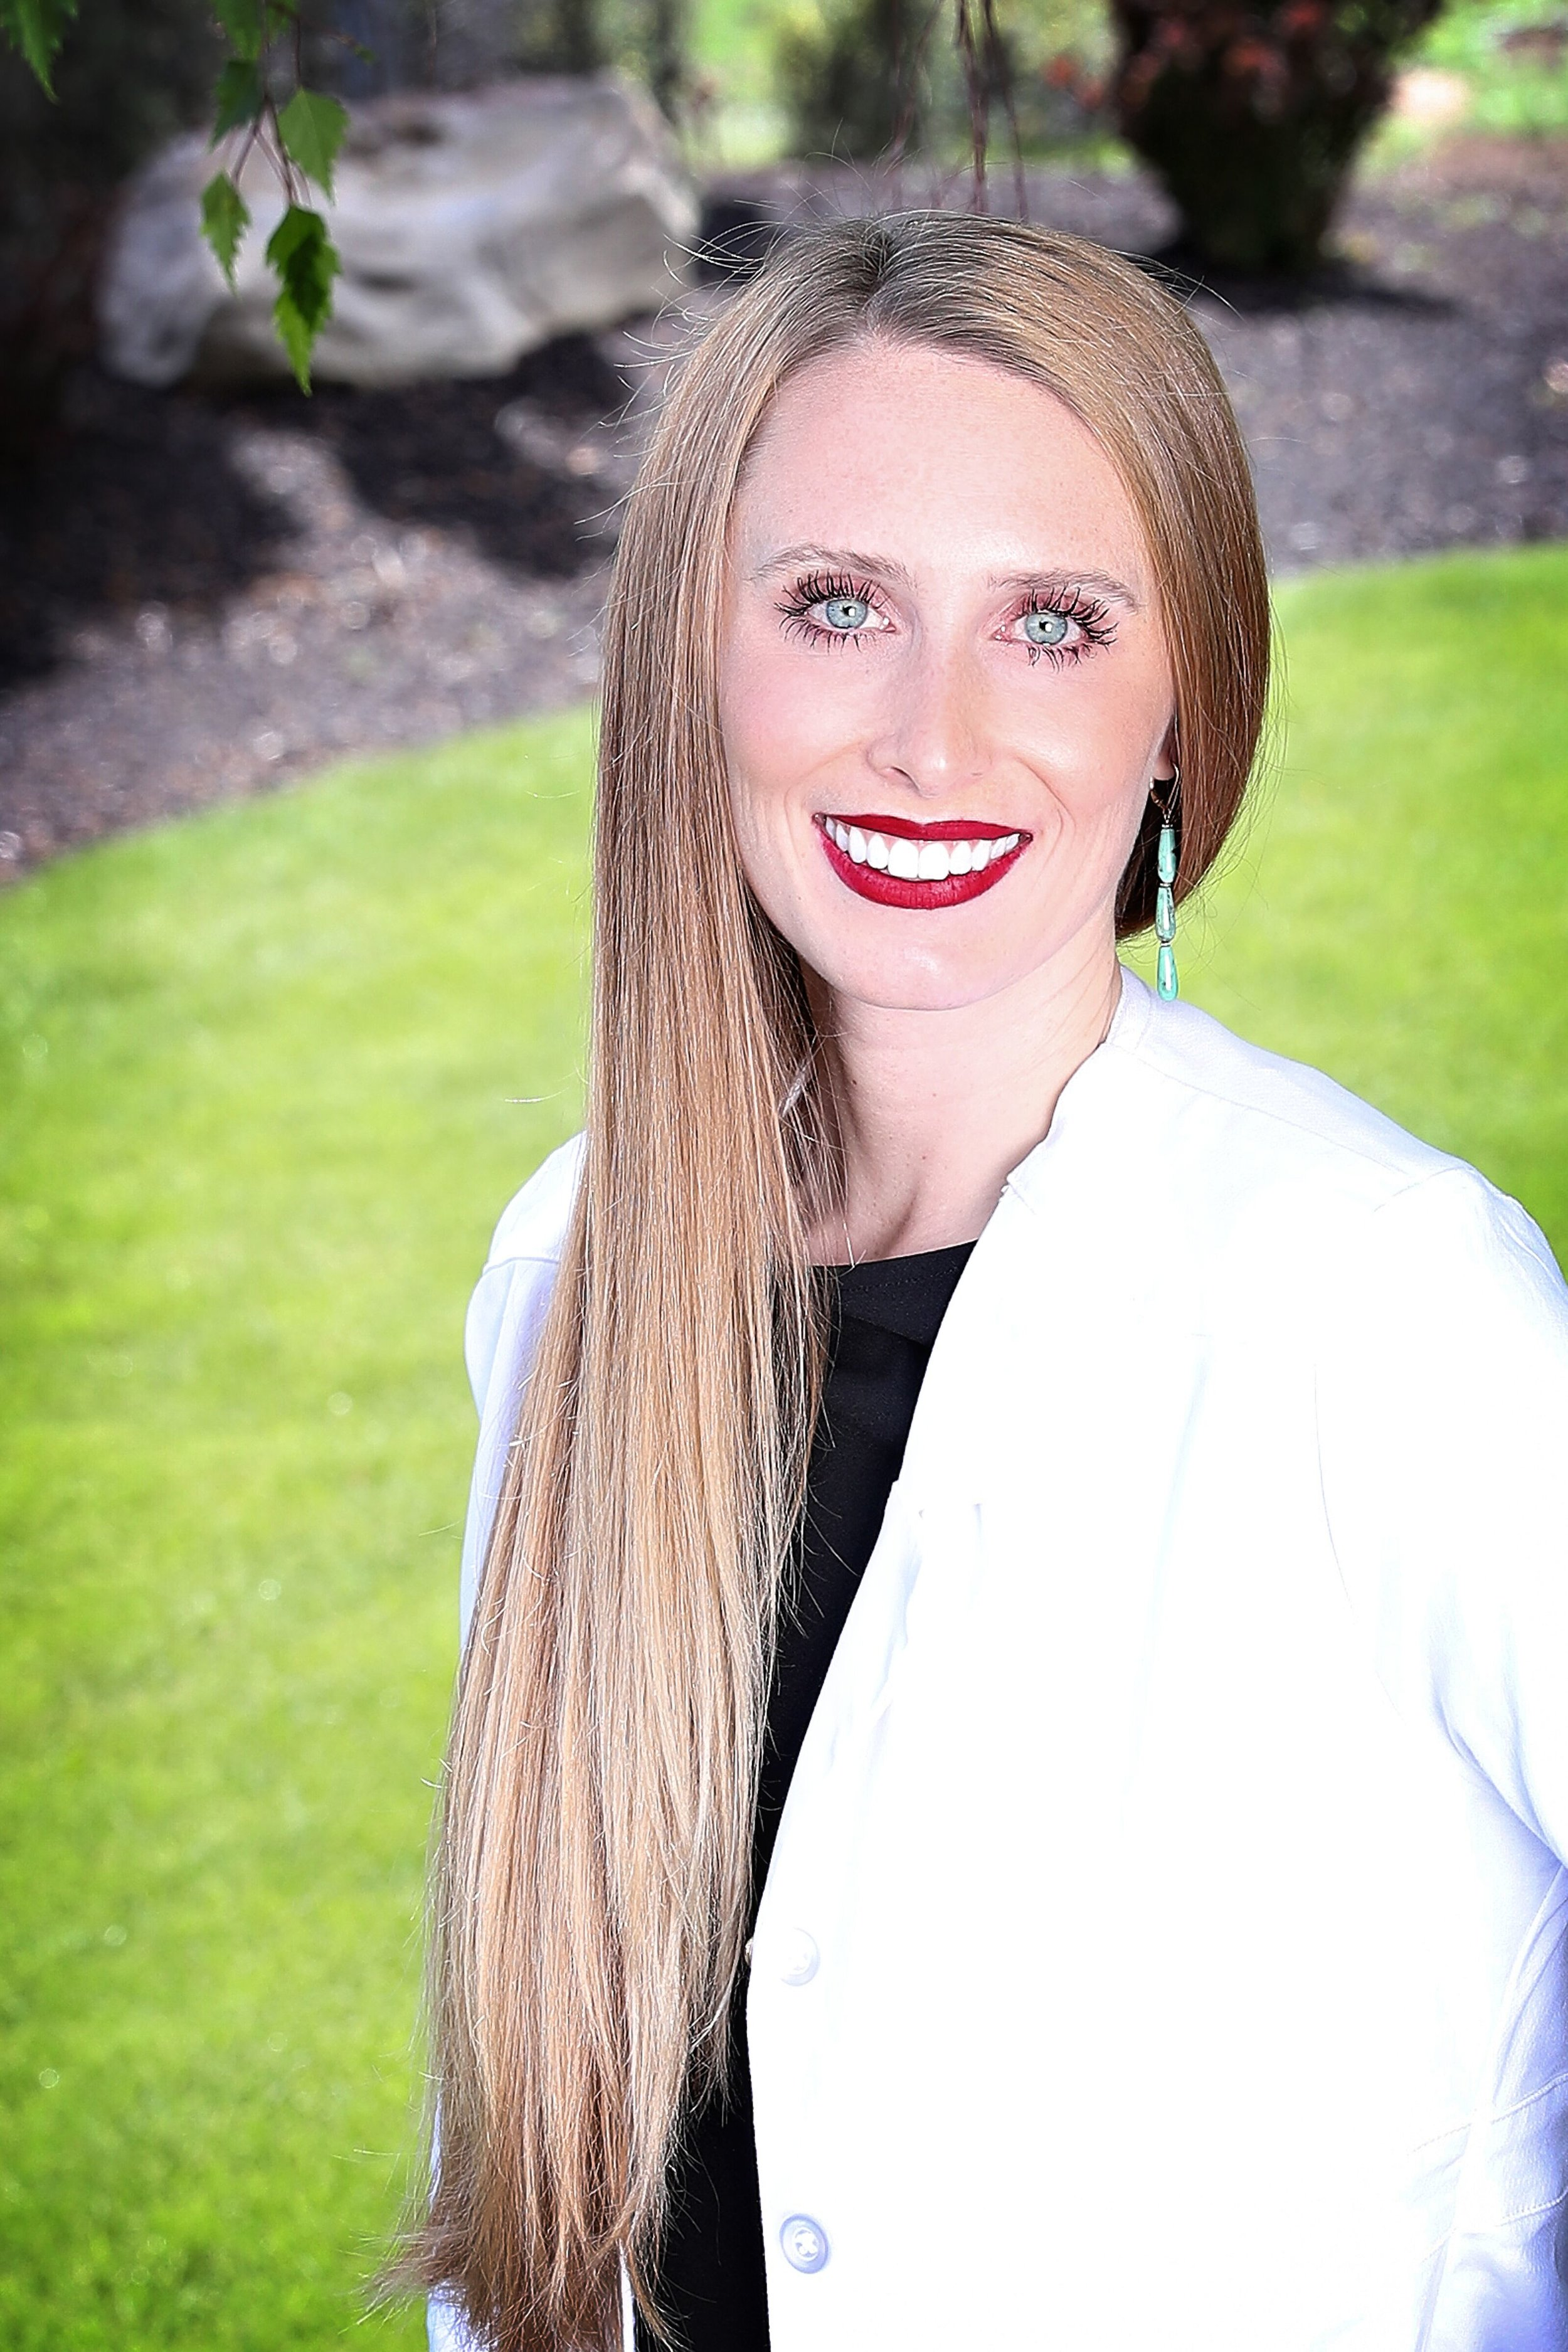 """Taylor Stockton  - Taylor is a Doctor of Nursing Practice with a focus as a Family Nurse Practitioner from Gonzaga University. Being an Oregon native she has always loved the vast activities the Northwest has to offer. Her drive for health and beauty has driven her to the aesthetic industry. """"My goal is to help my patients feel their best self at every aspect of life!"""" She is a nurse at heart and believes in treating patients in a holistic way. """"Every patient is unique and beautiful in their own way and I believe in helping treat the whole person in everything I do."""" She strives to be the best and to stay true and current to the ever-changing medical industry. Her focus is on safe practice with lovely results and blissful lasting relationships."""